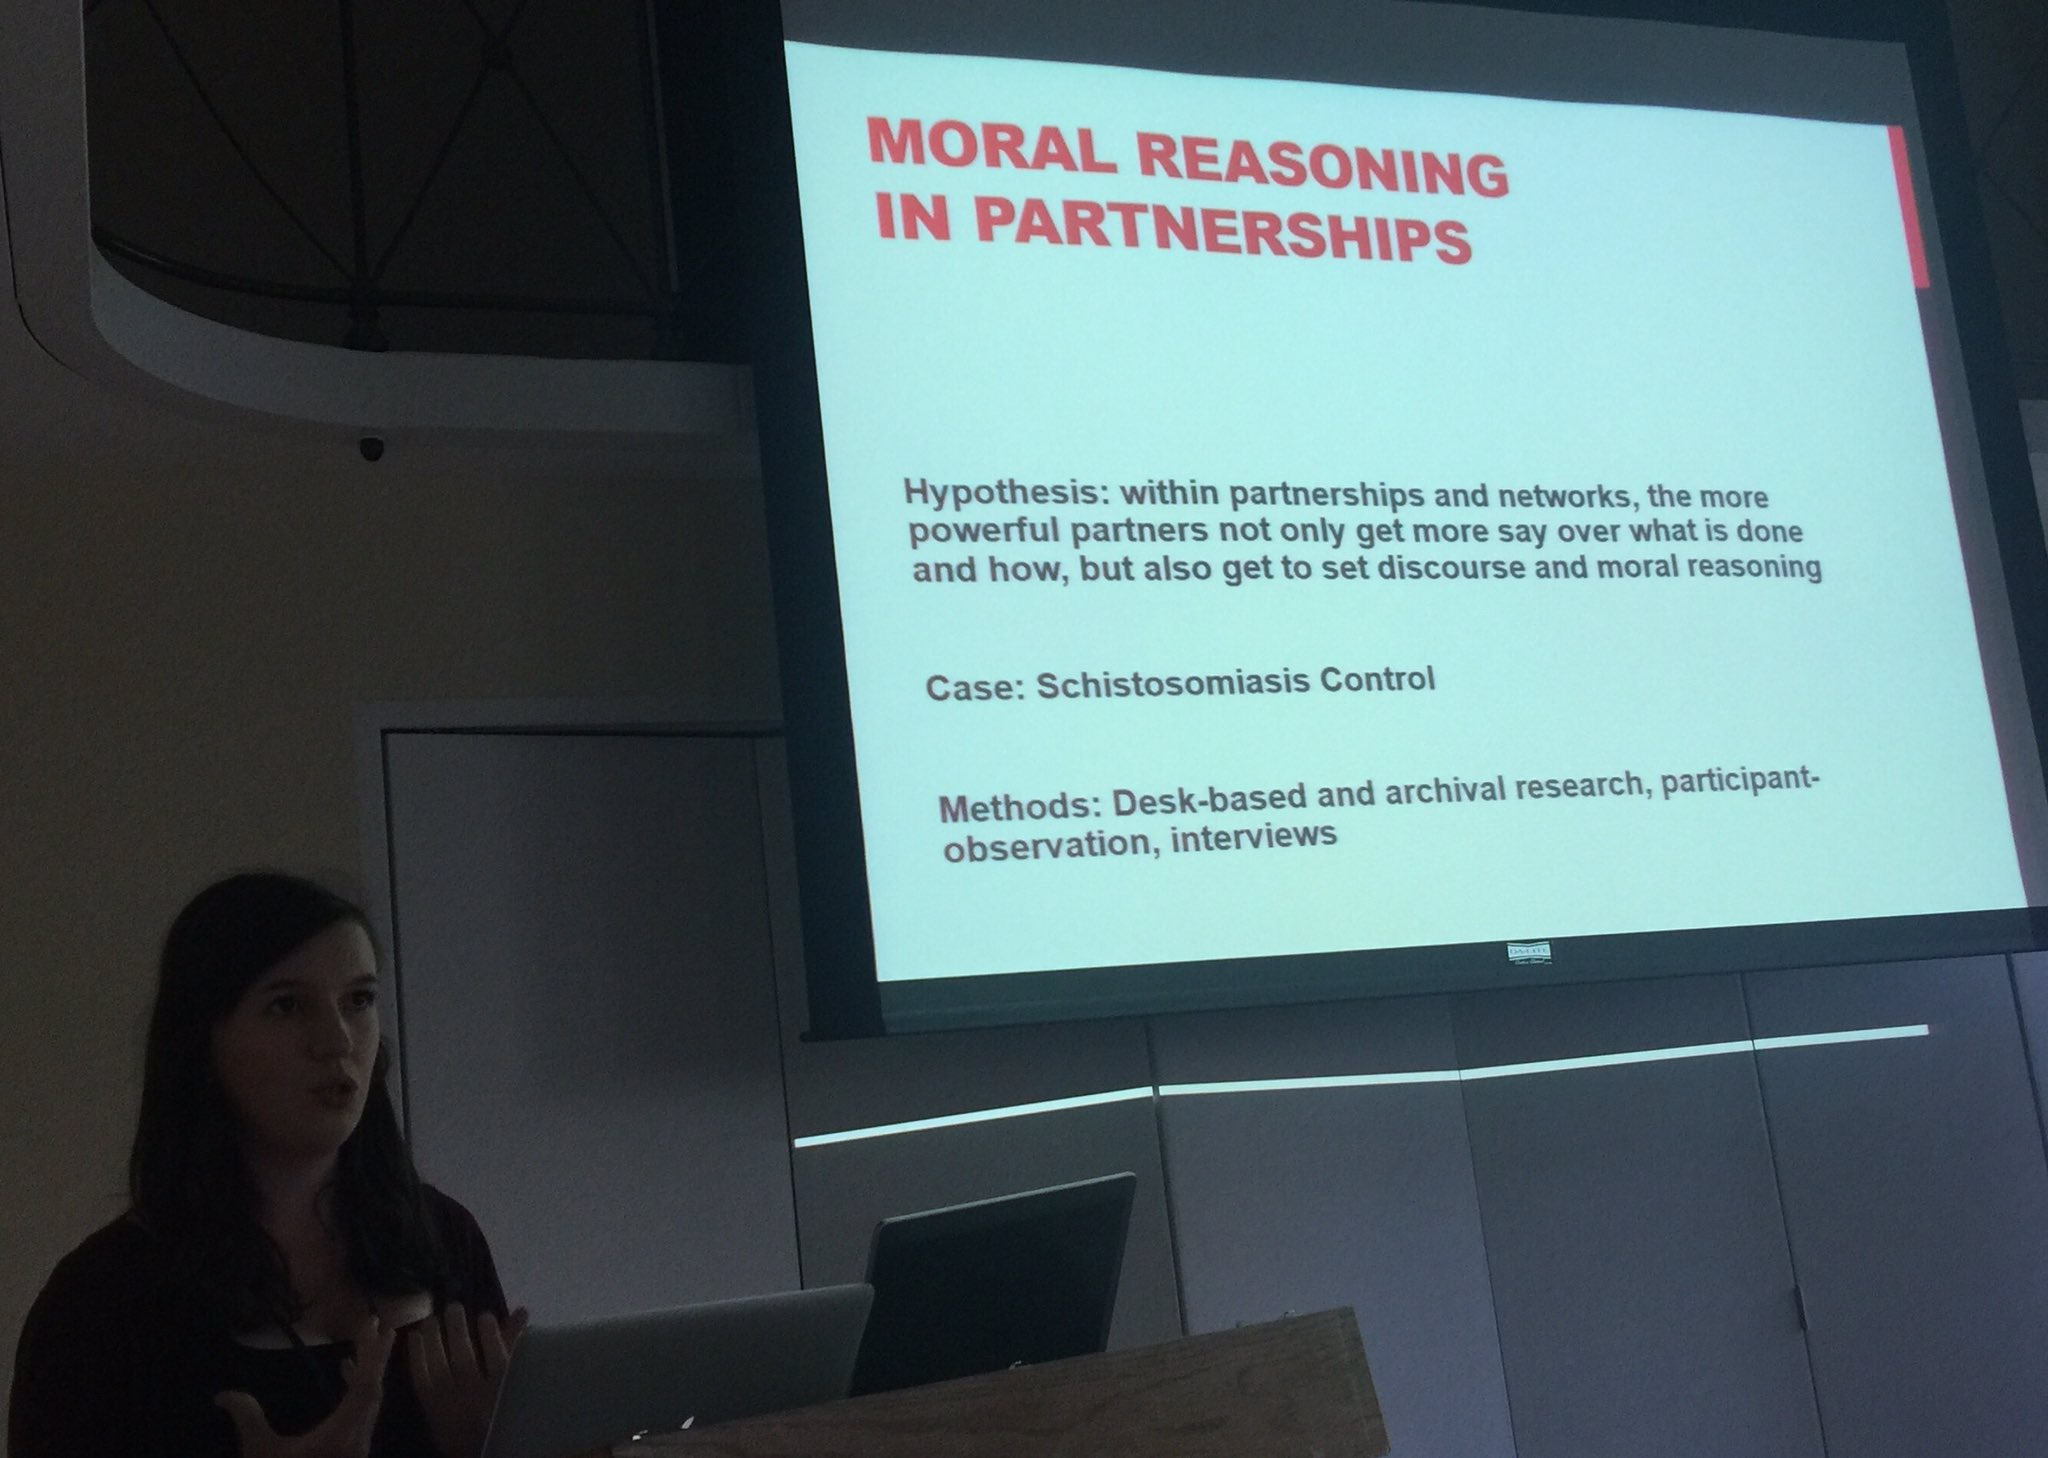 #DSA2016 #P68 #Partnership #Power SophieHermans changing tropes 4 moral reasoning in Schisto/ deworming partnerships https://t.co/QsjN9GkszN